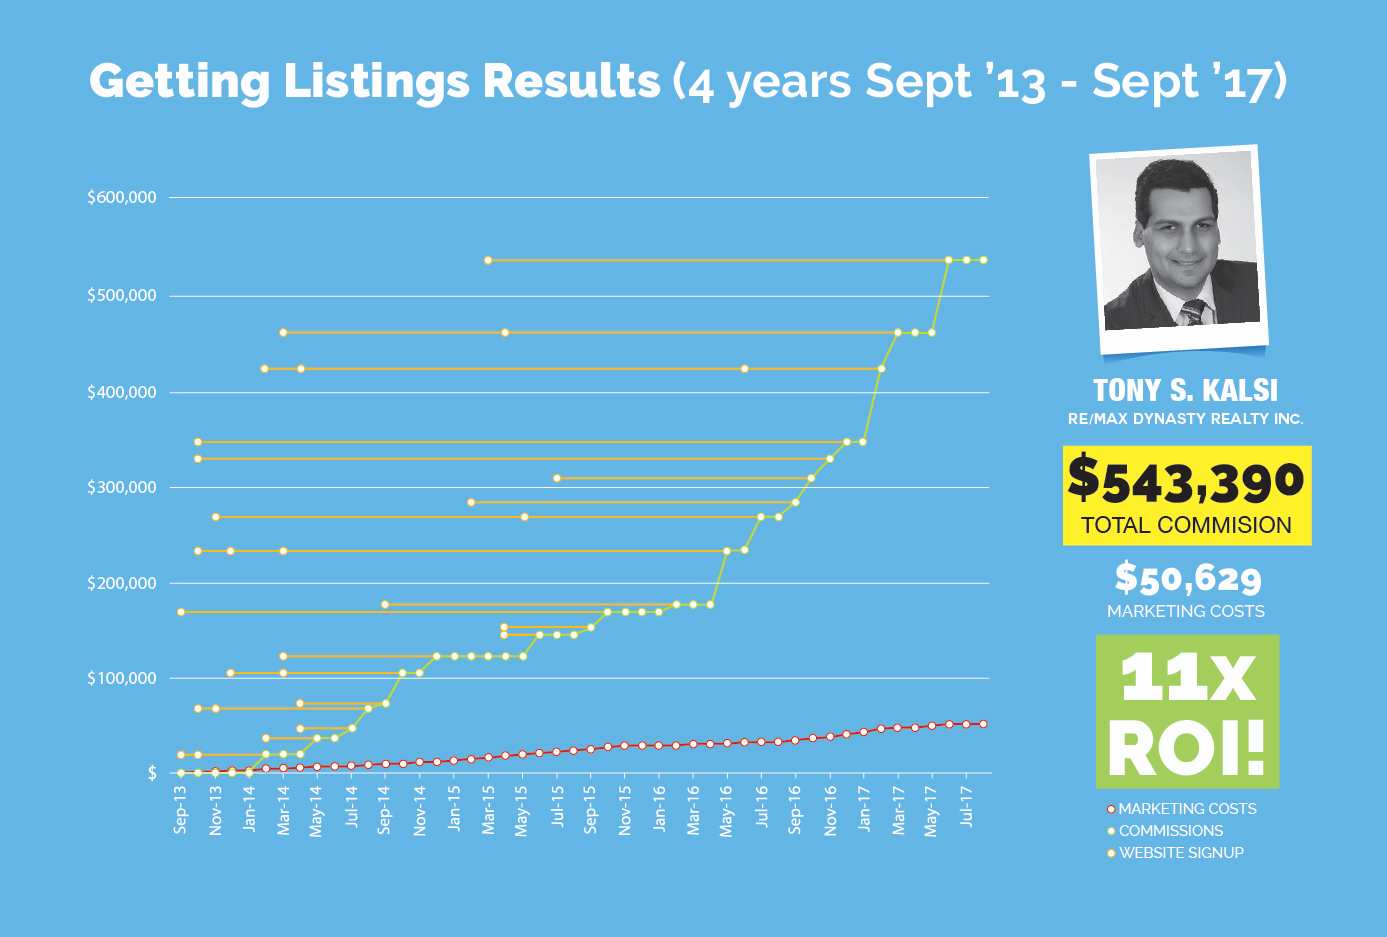 GettingListingsResults_Sept13-17.jpg